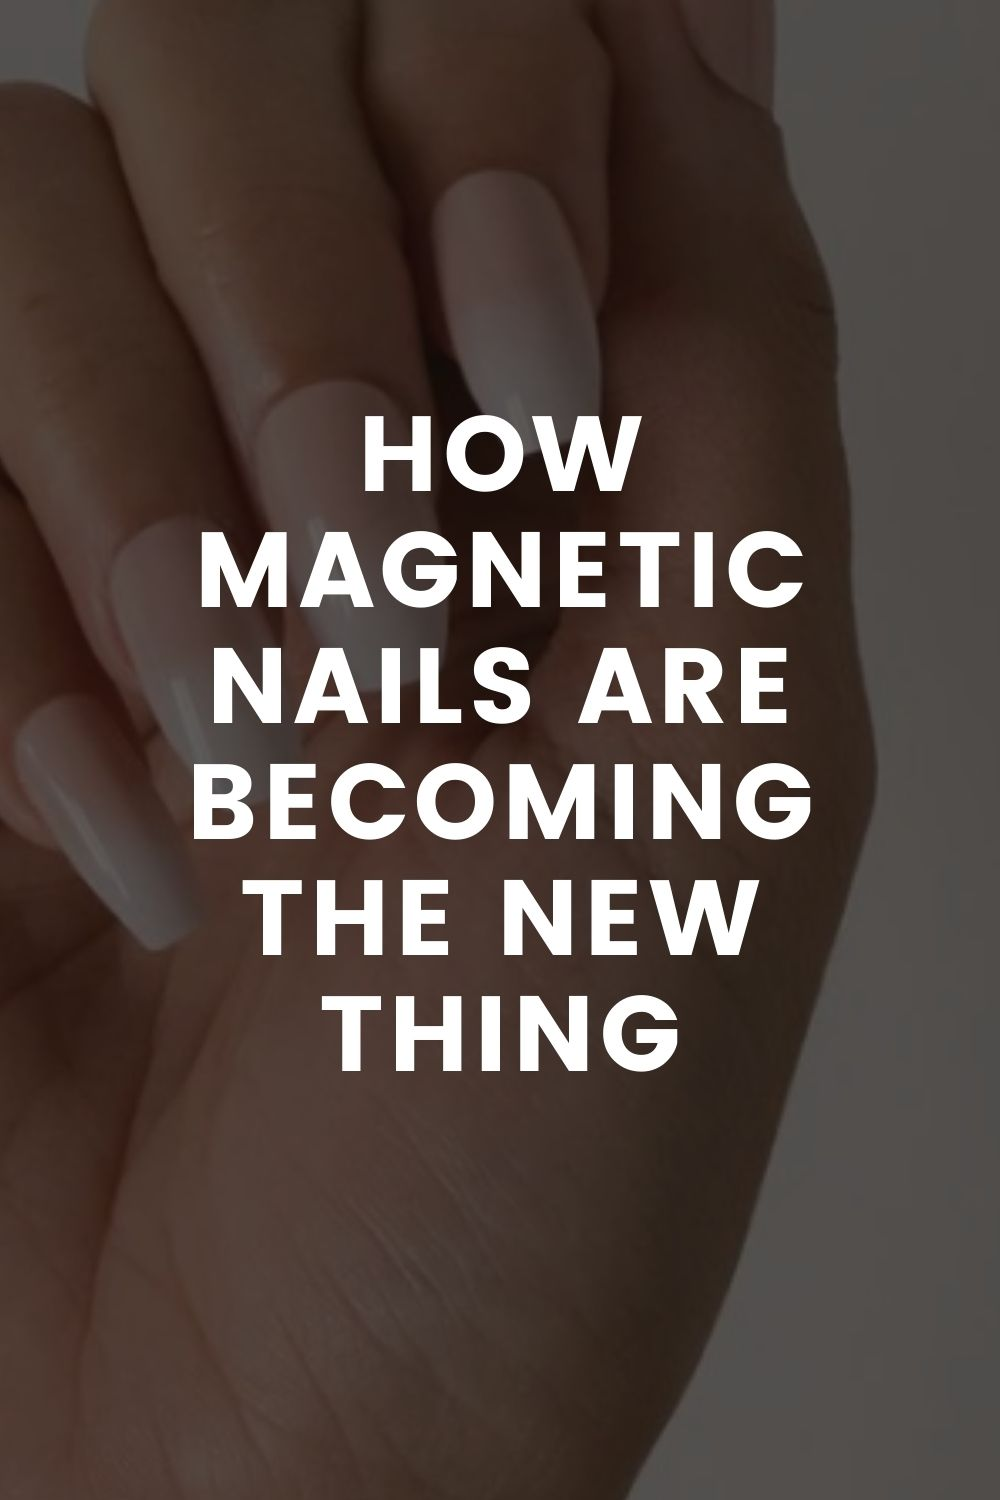 How Magnetic Nails Are Becoming the New Thing